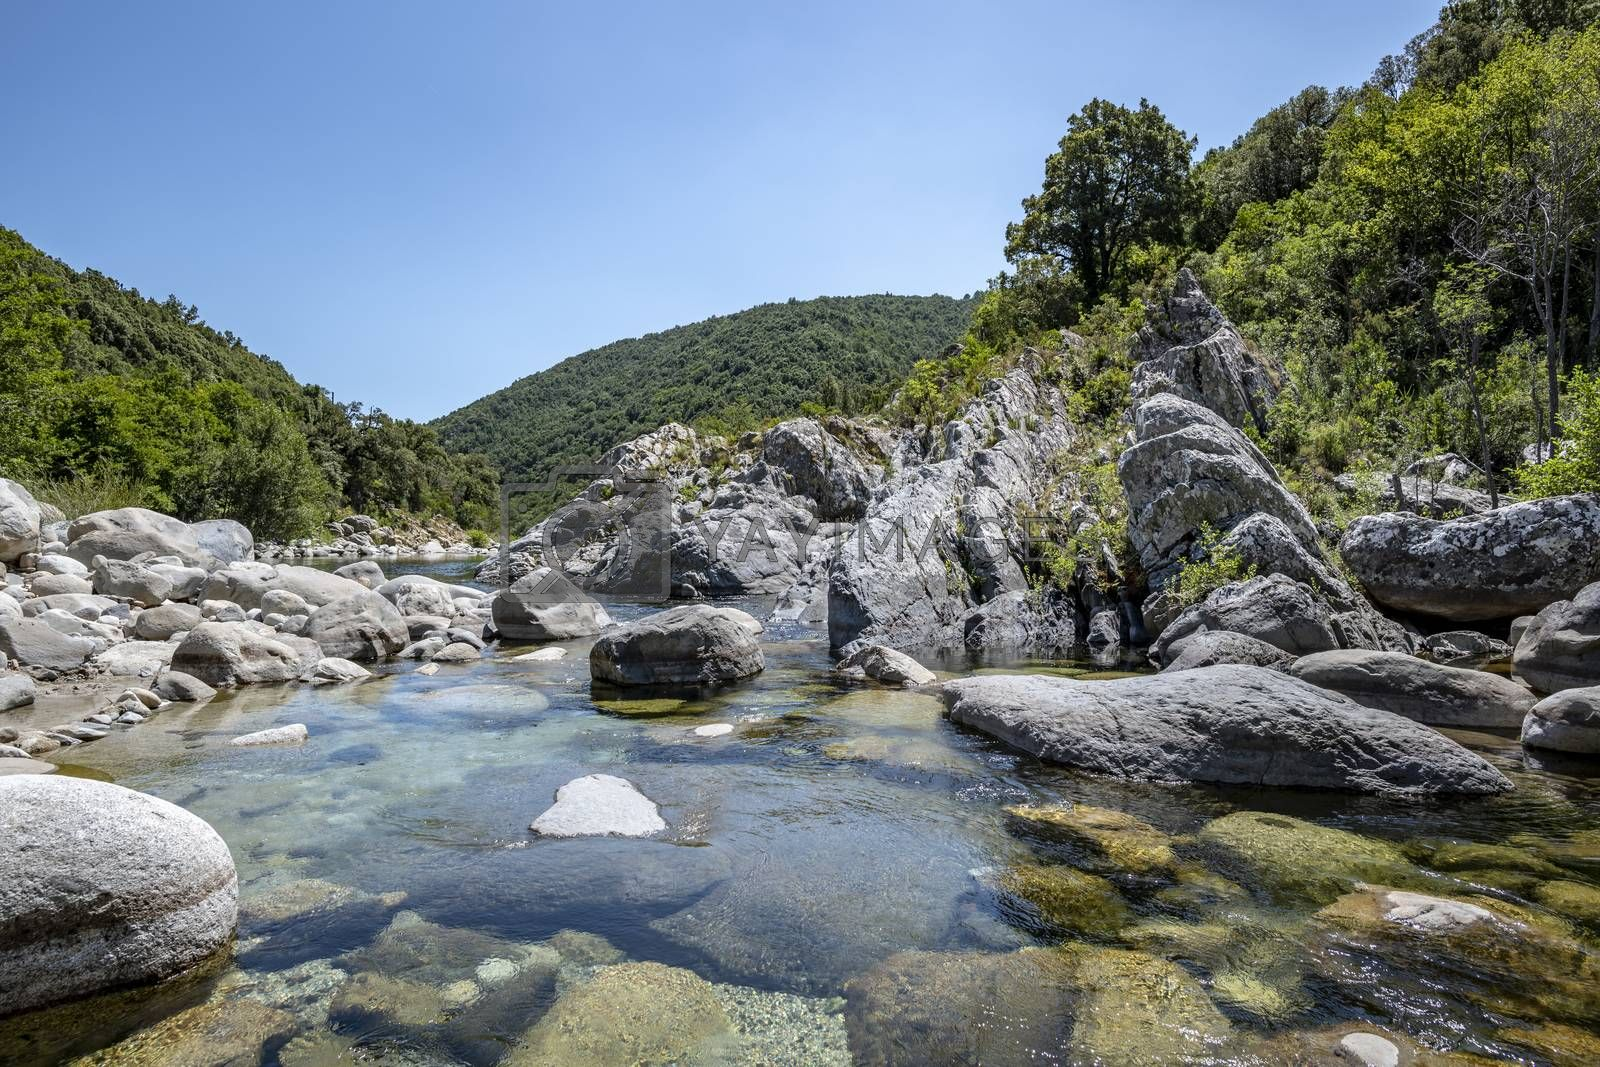 Pure and fresh water natural pool of Travu River, Corsica, France, Europe (copy space in the sky)